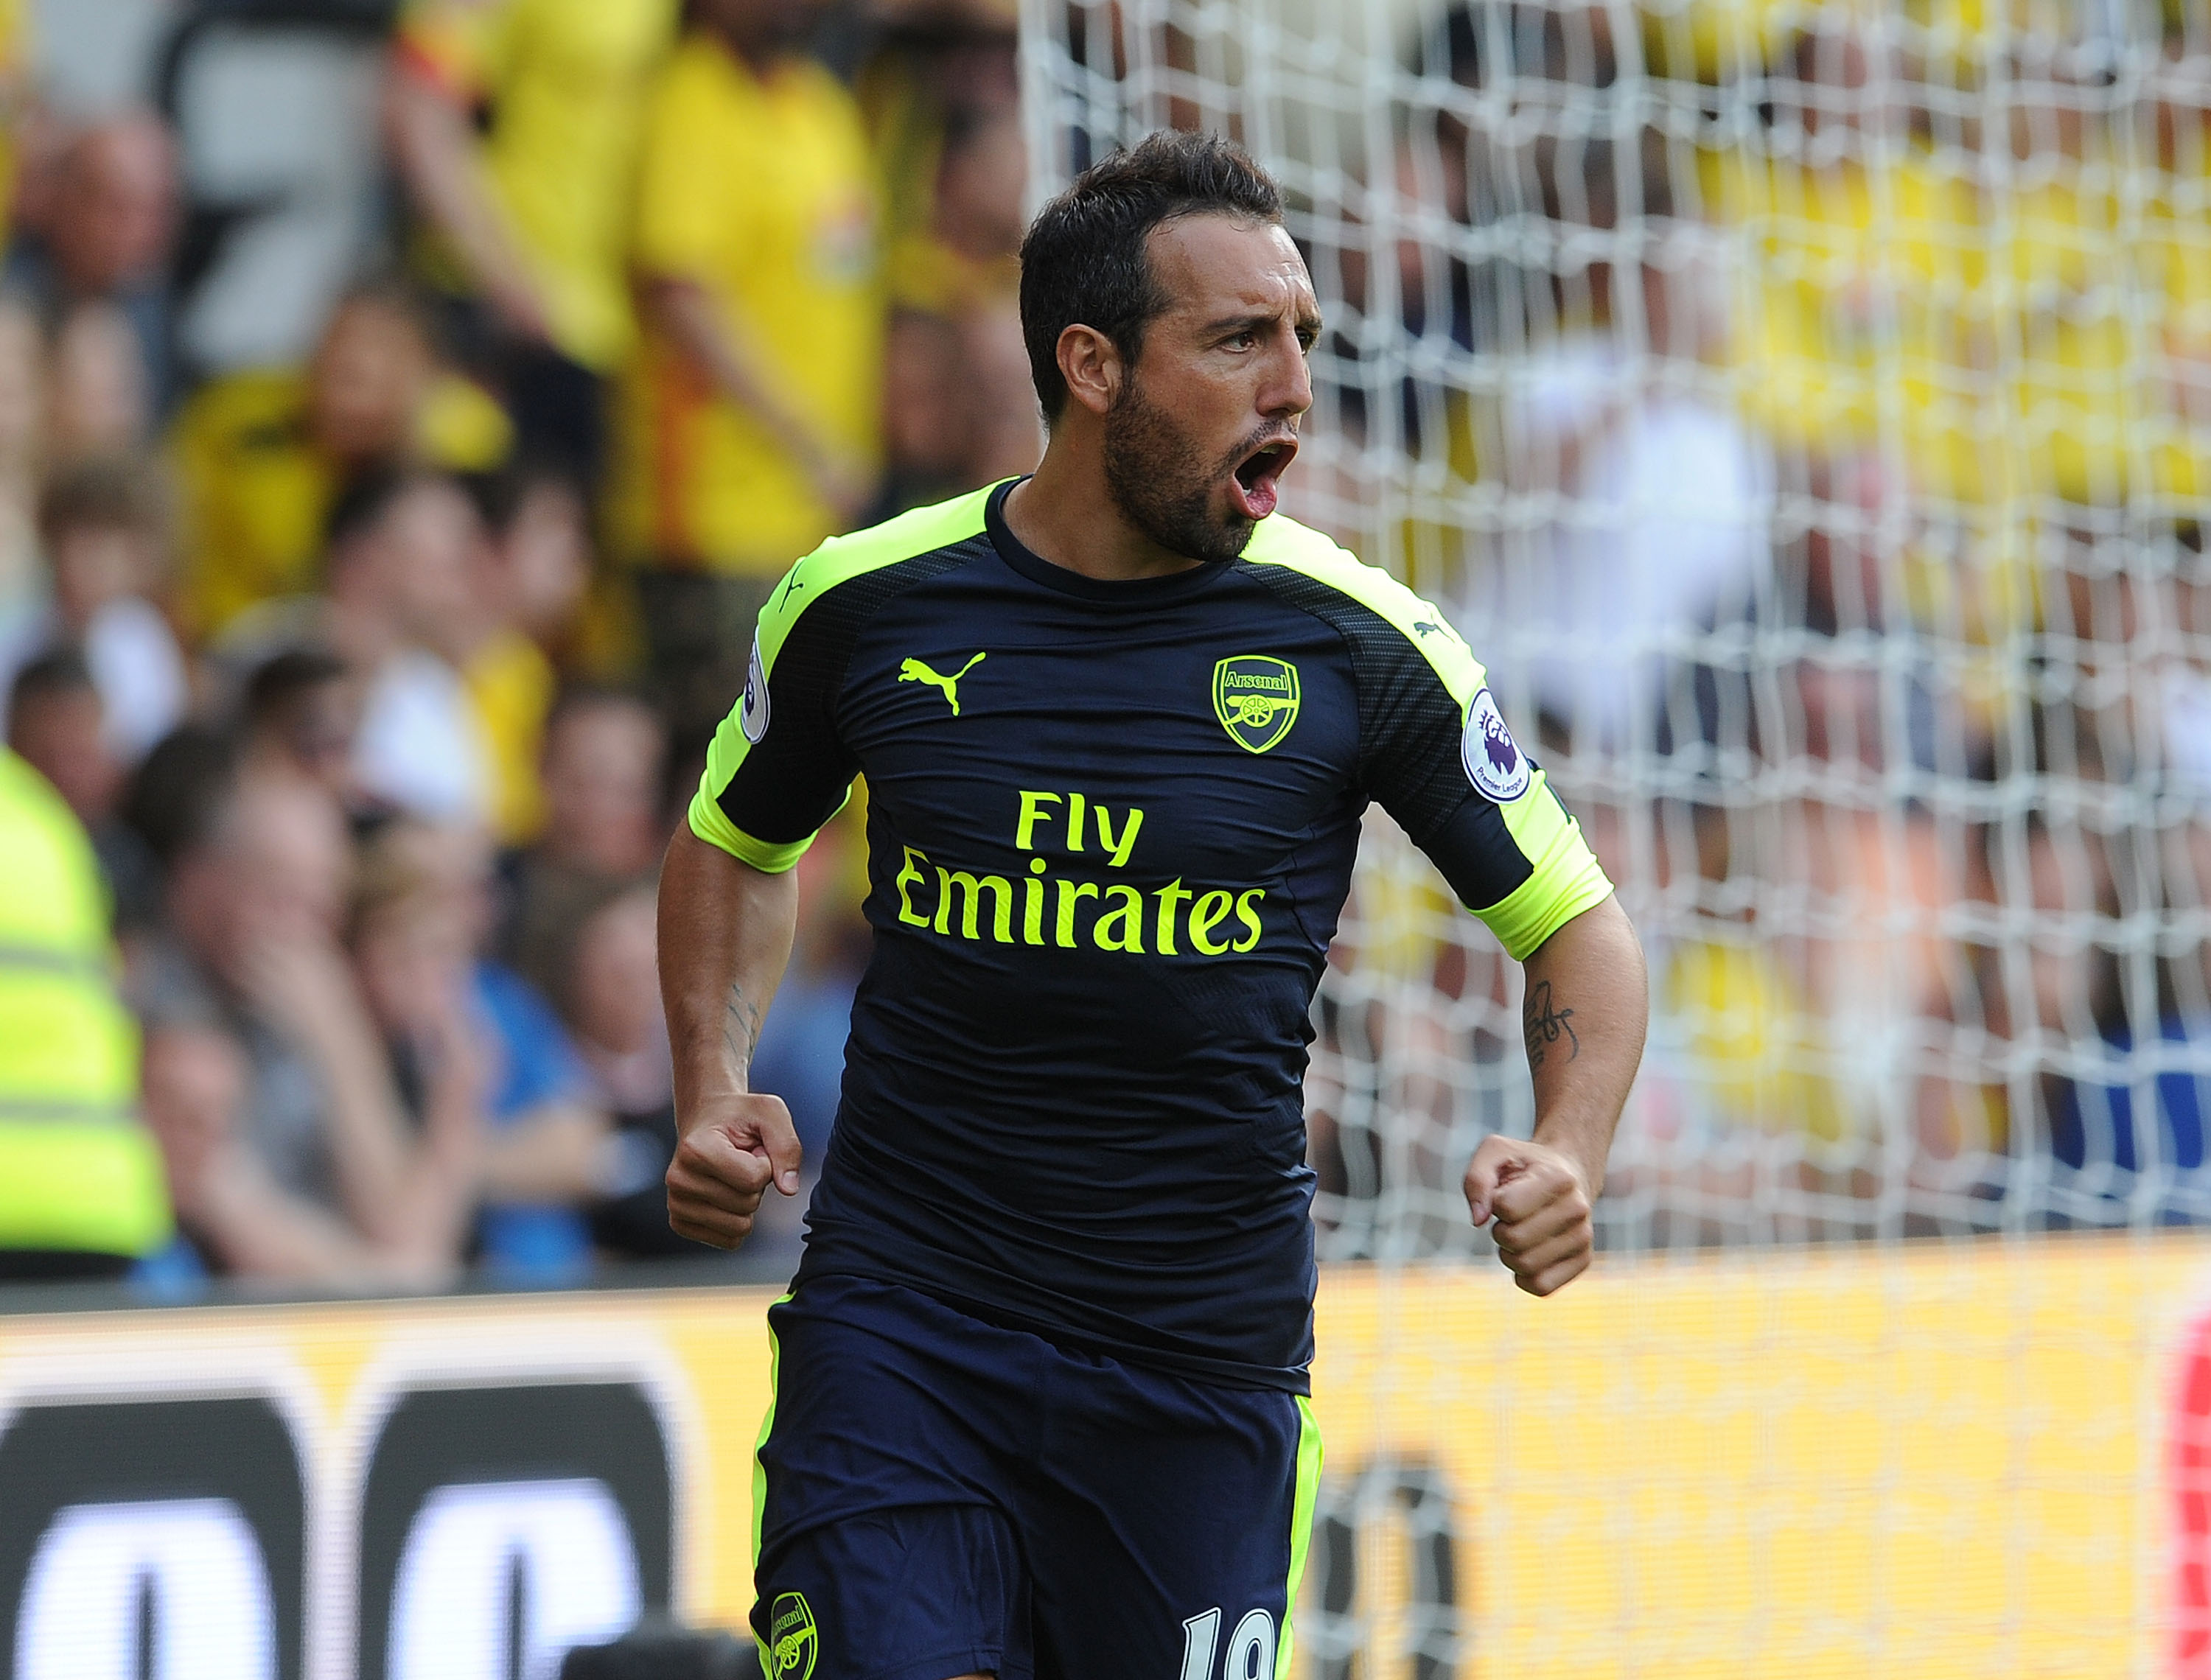 Santi Cazorla shows his unbelievable corner tekkers in Arsenal's 3-1 win over Watford